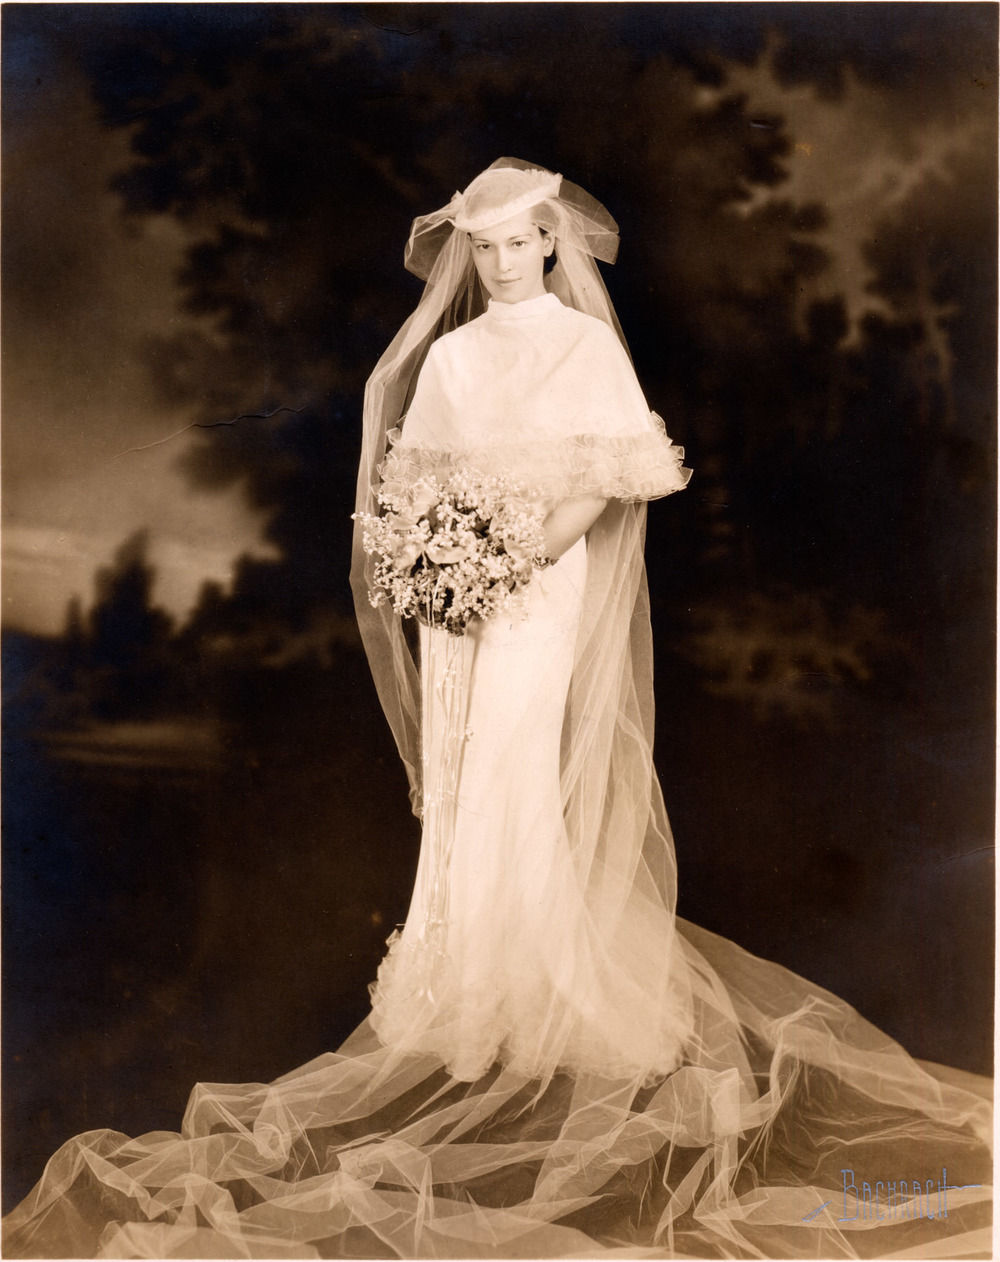 Bernice Fried Sacks - Wedding Photo. (c.1936)